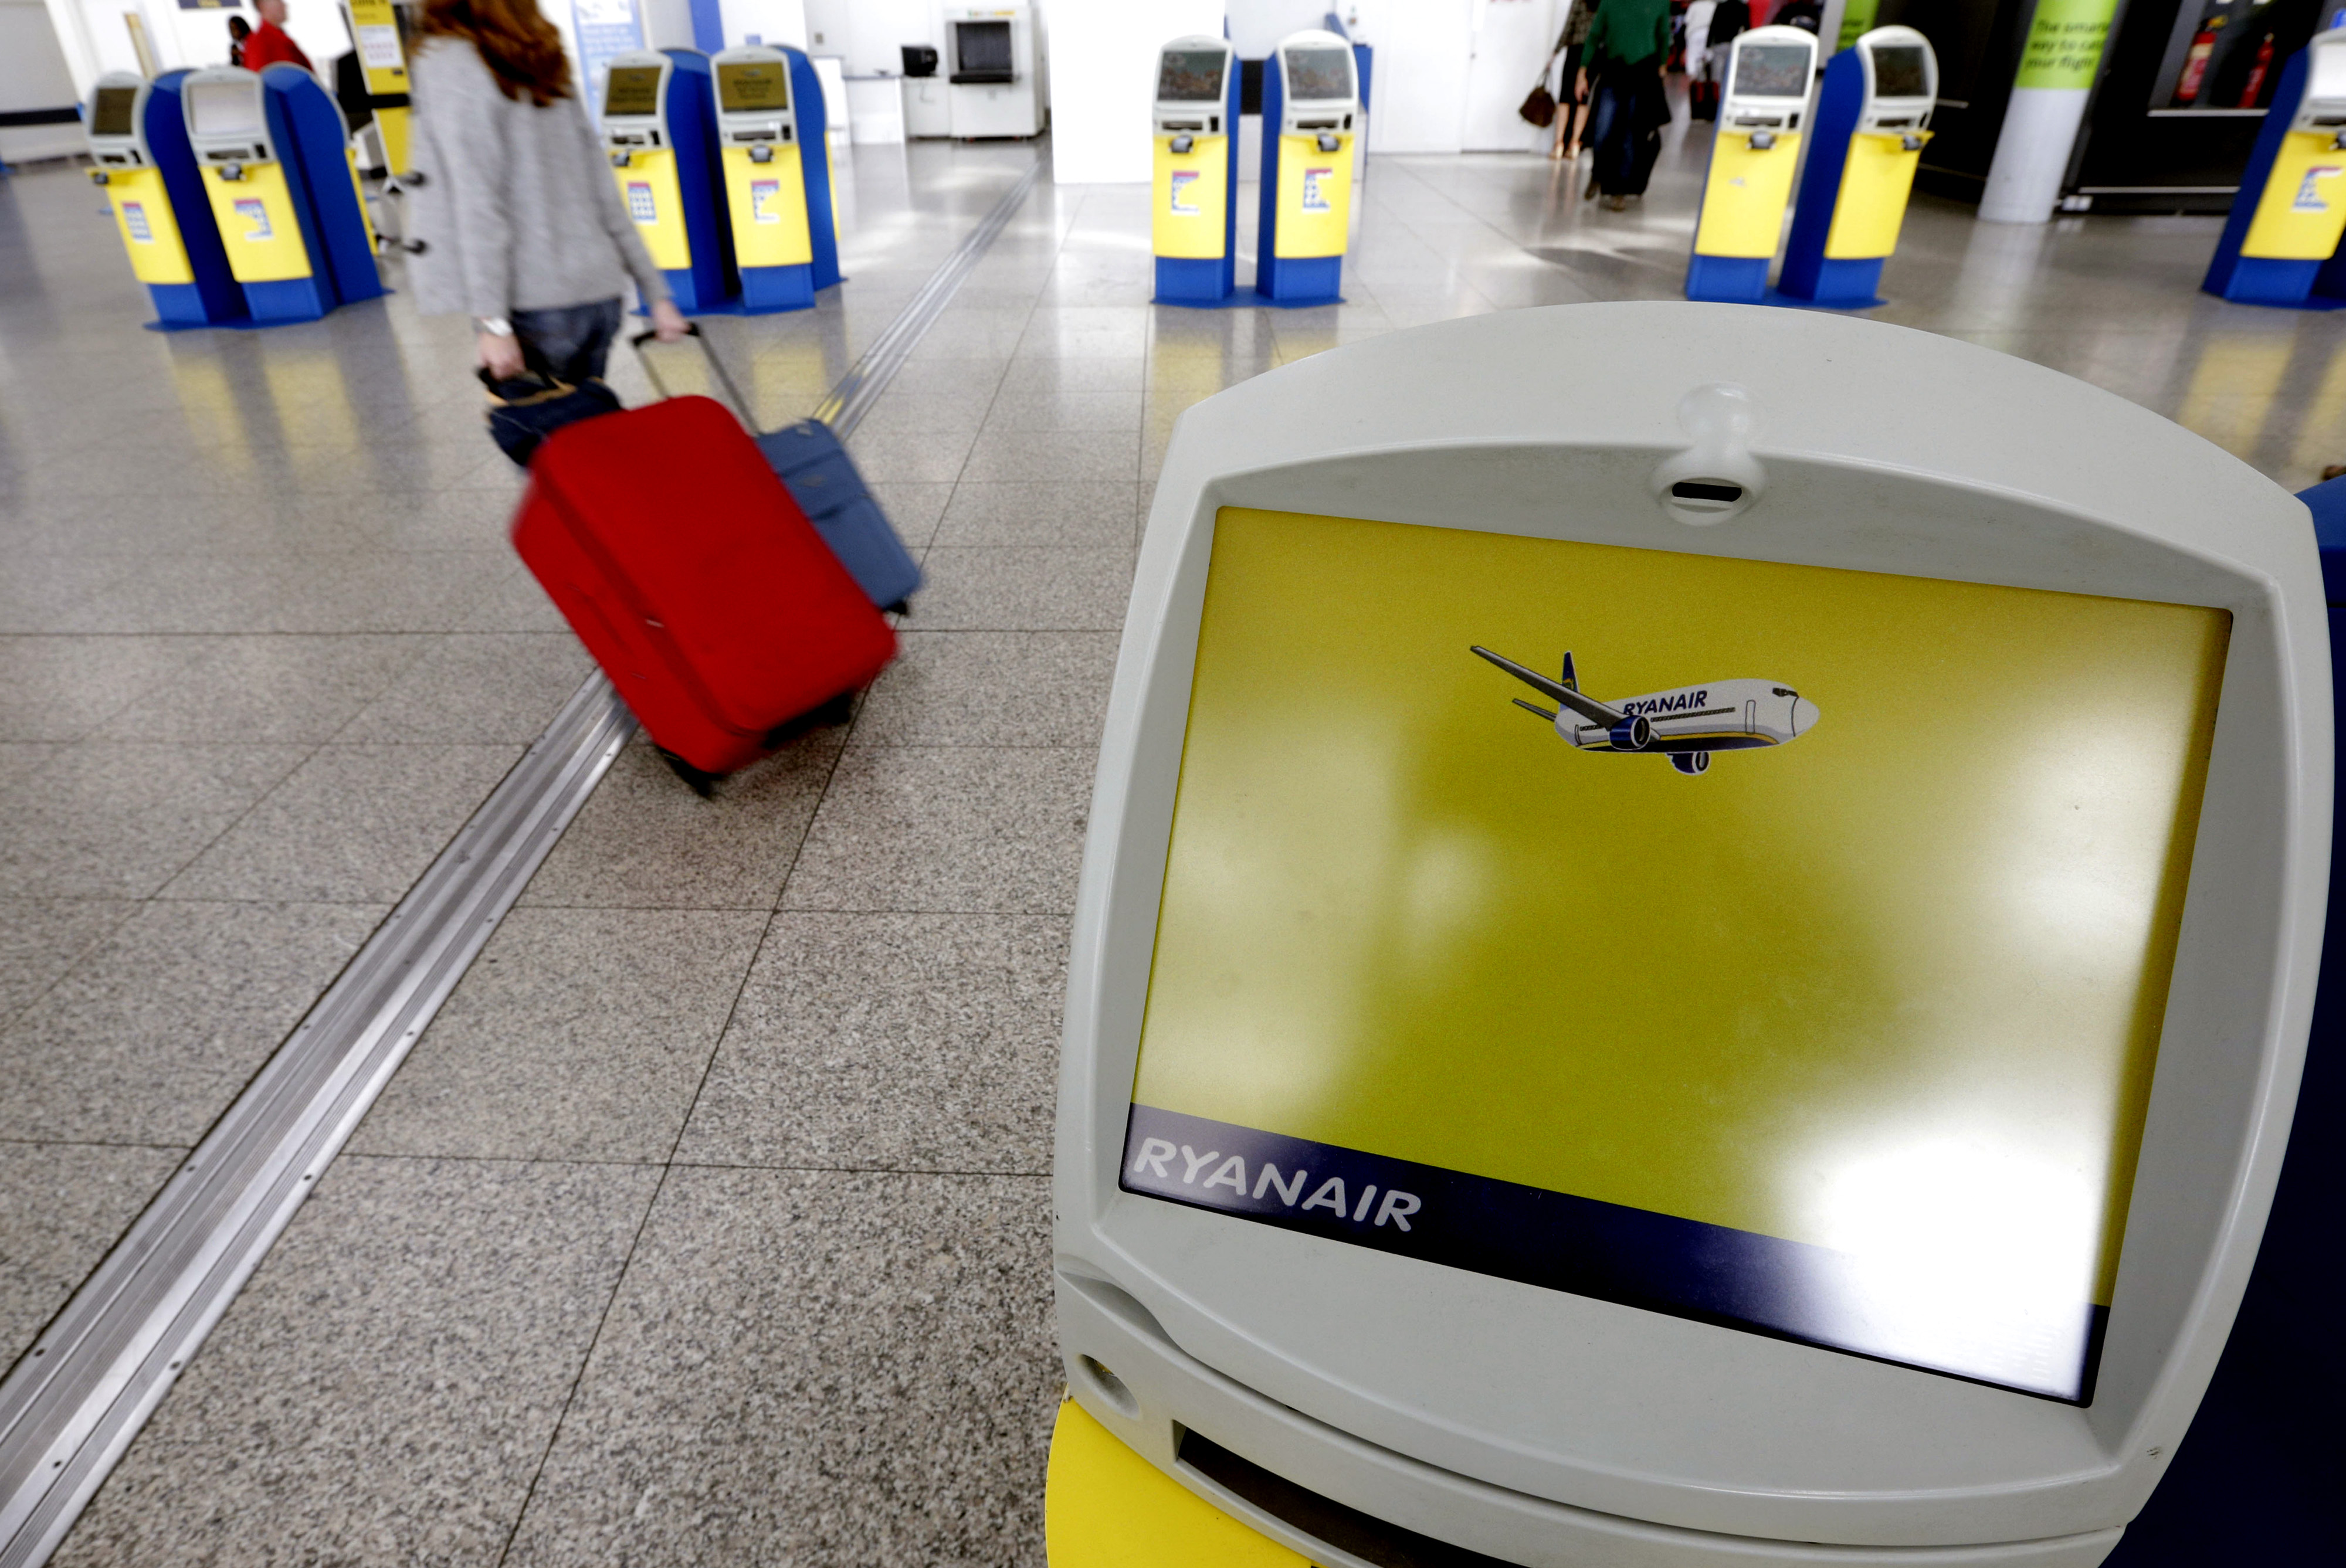 A passenger passes self-service check-in machines Ryanair Holdings Plc at Stansted Airport in London, U.K., on Wednesday, Aug. 7, 2013.